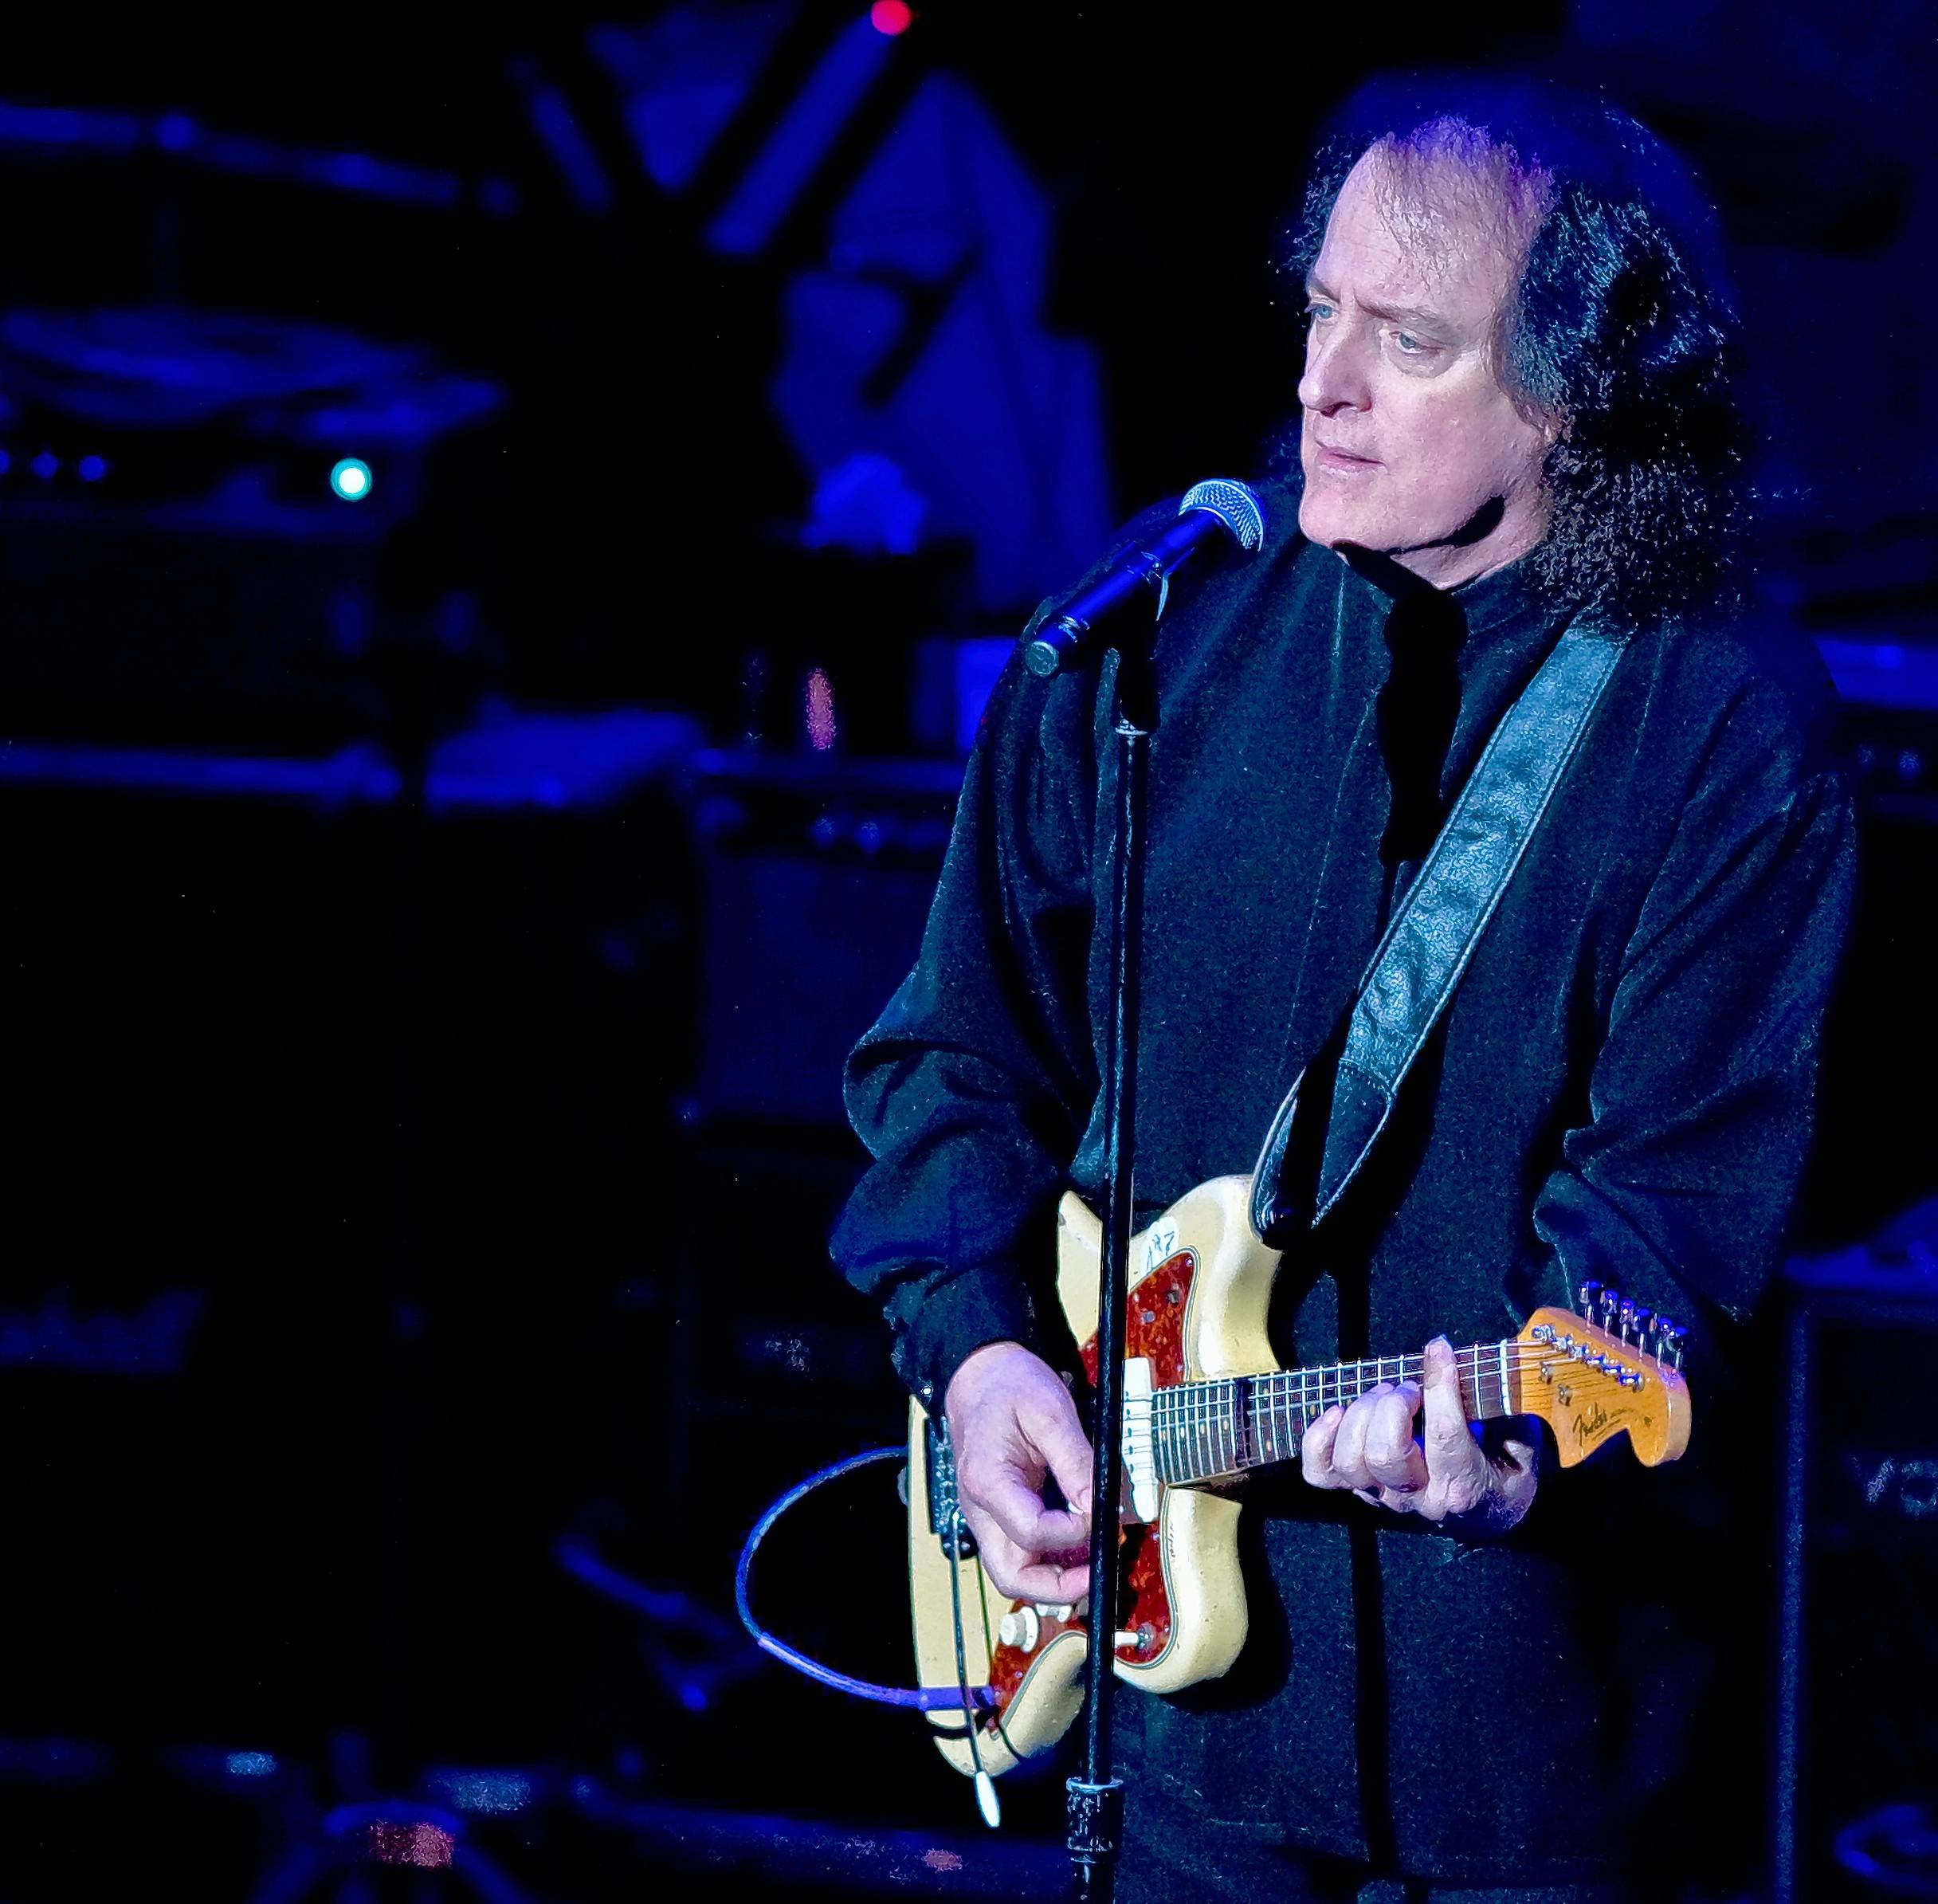 Tommy James and the Shondells bring the hits to St. Charles' Arcada Theatre Saturday, Sept. 23.